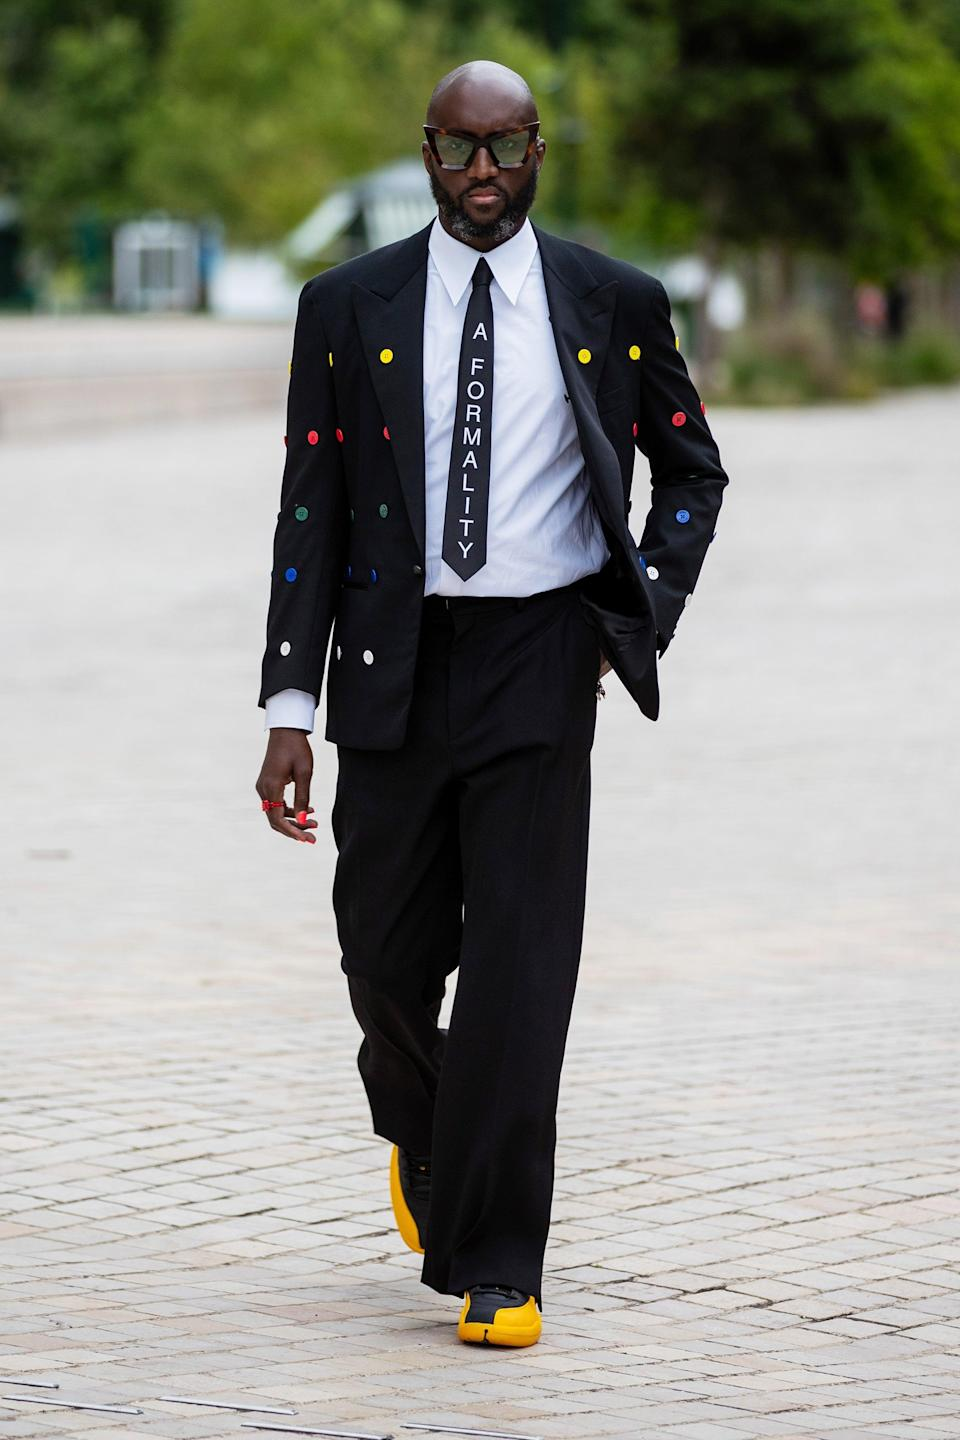 """Off-White designer Virgil Abloh made a black suit look summer-appropriate with a rainbow-hued polka dot print, a tie with """"A Formality"""" emblazoned on it, and colourful shoes. <span class=""""copyright"""">Photo: Christian Vierig/Getty Images.</span>"""